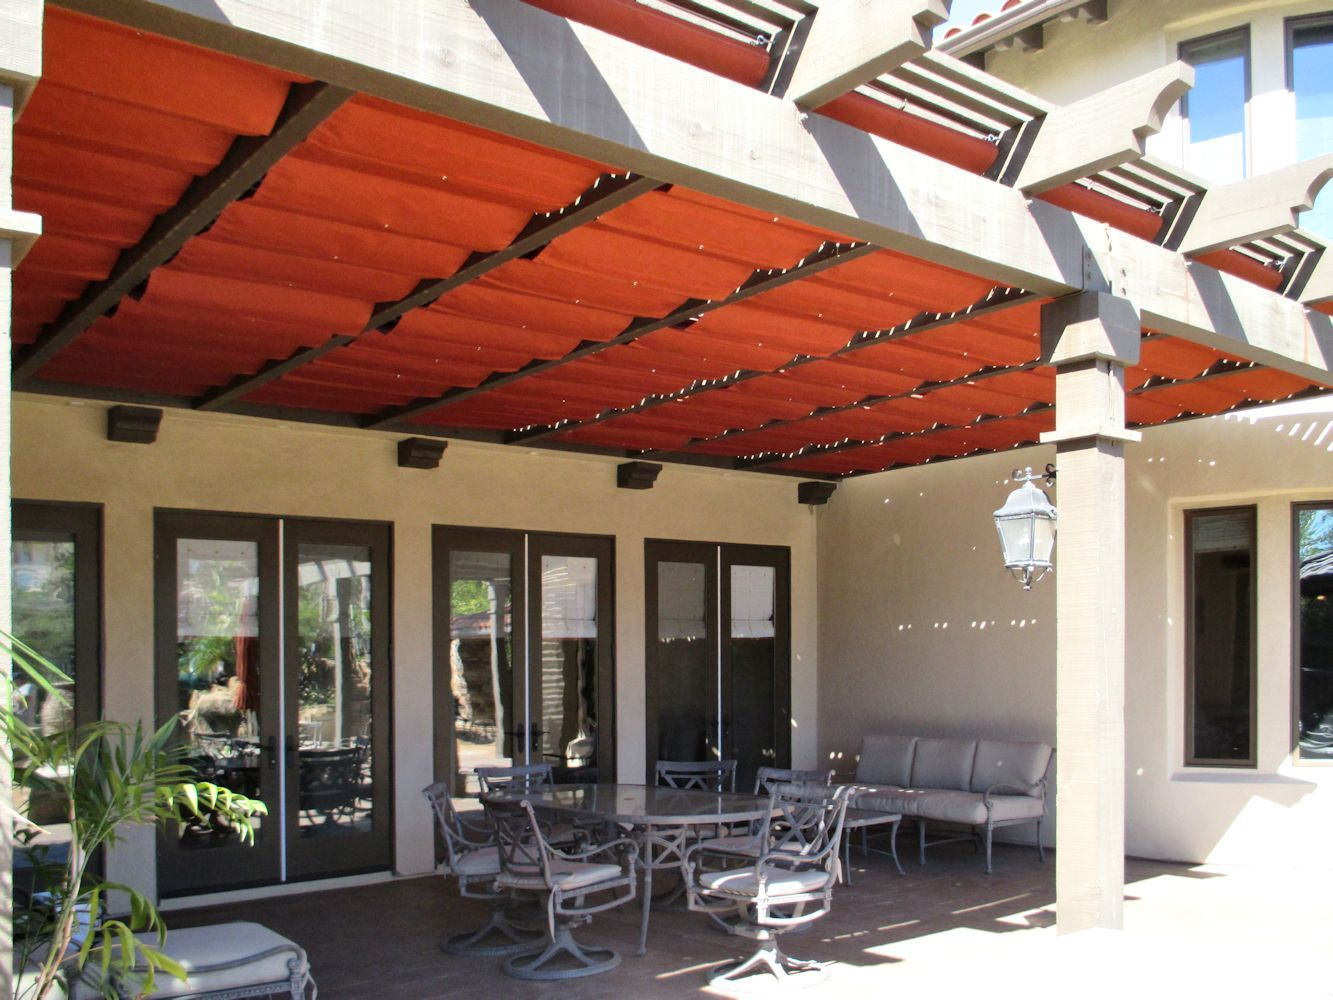 Slide Wire Cable Awnings By Superior Awning Let The Sun Shine Slide Wire Cable Awnings Slide Wire Canopy Backyard Inspiration